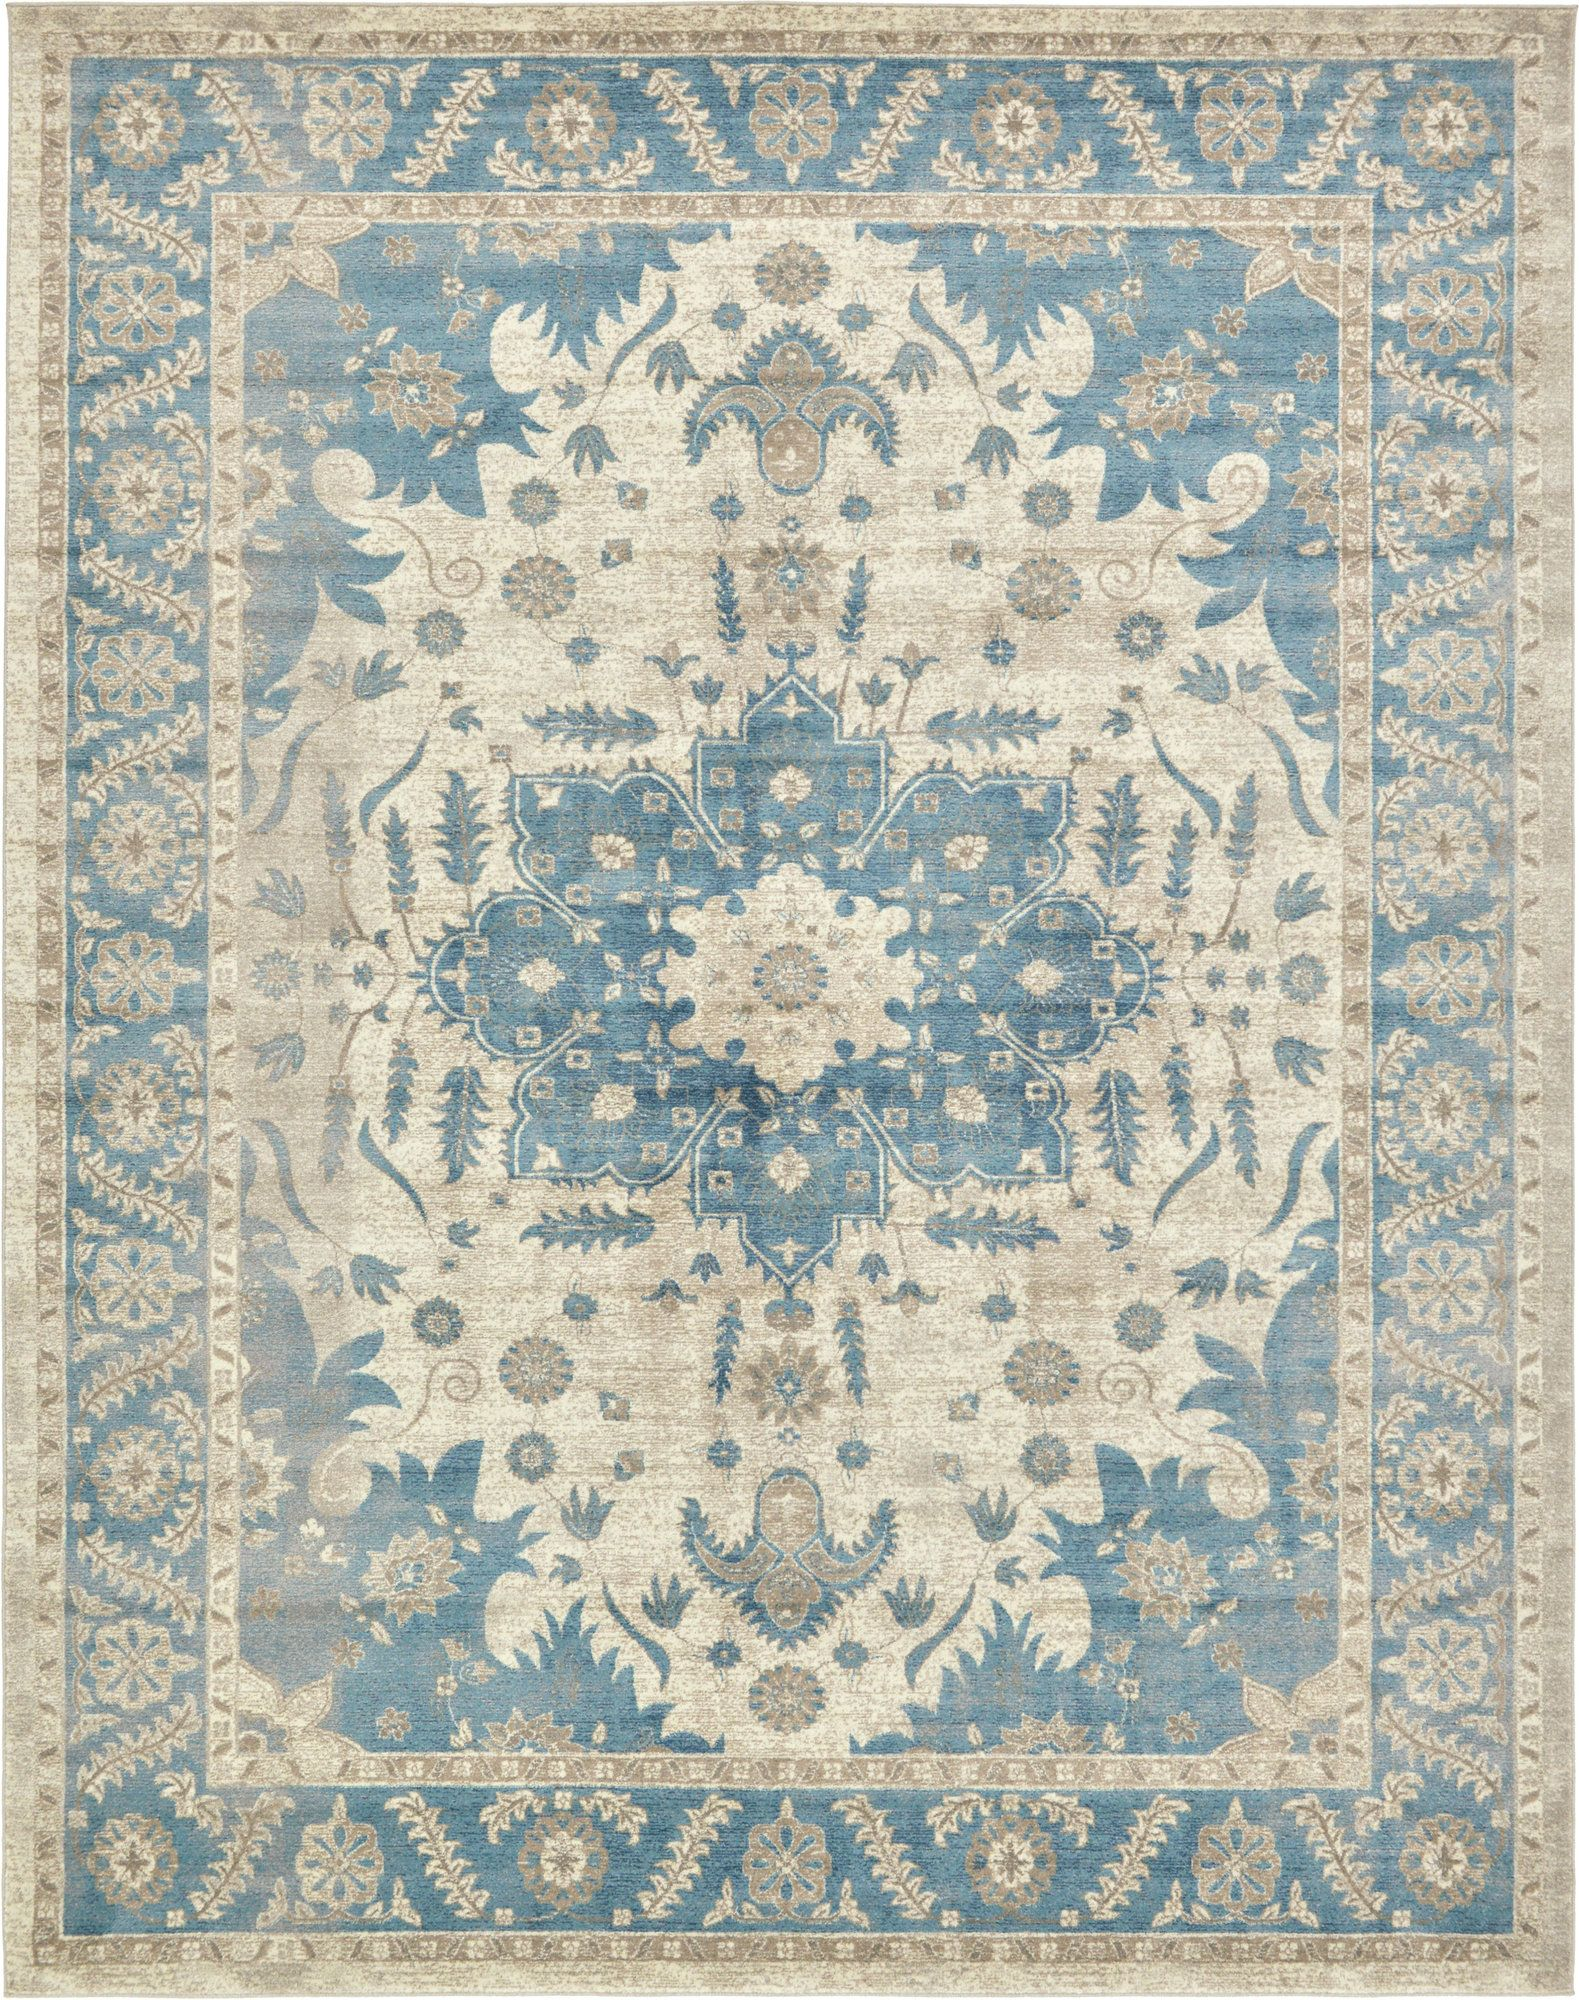 Sampson Rug In Cream & Blue